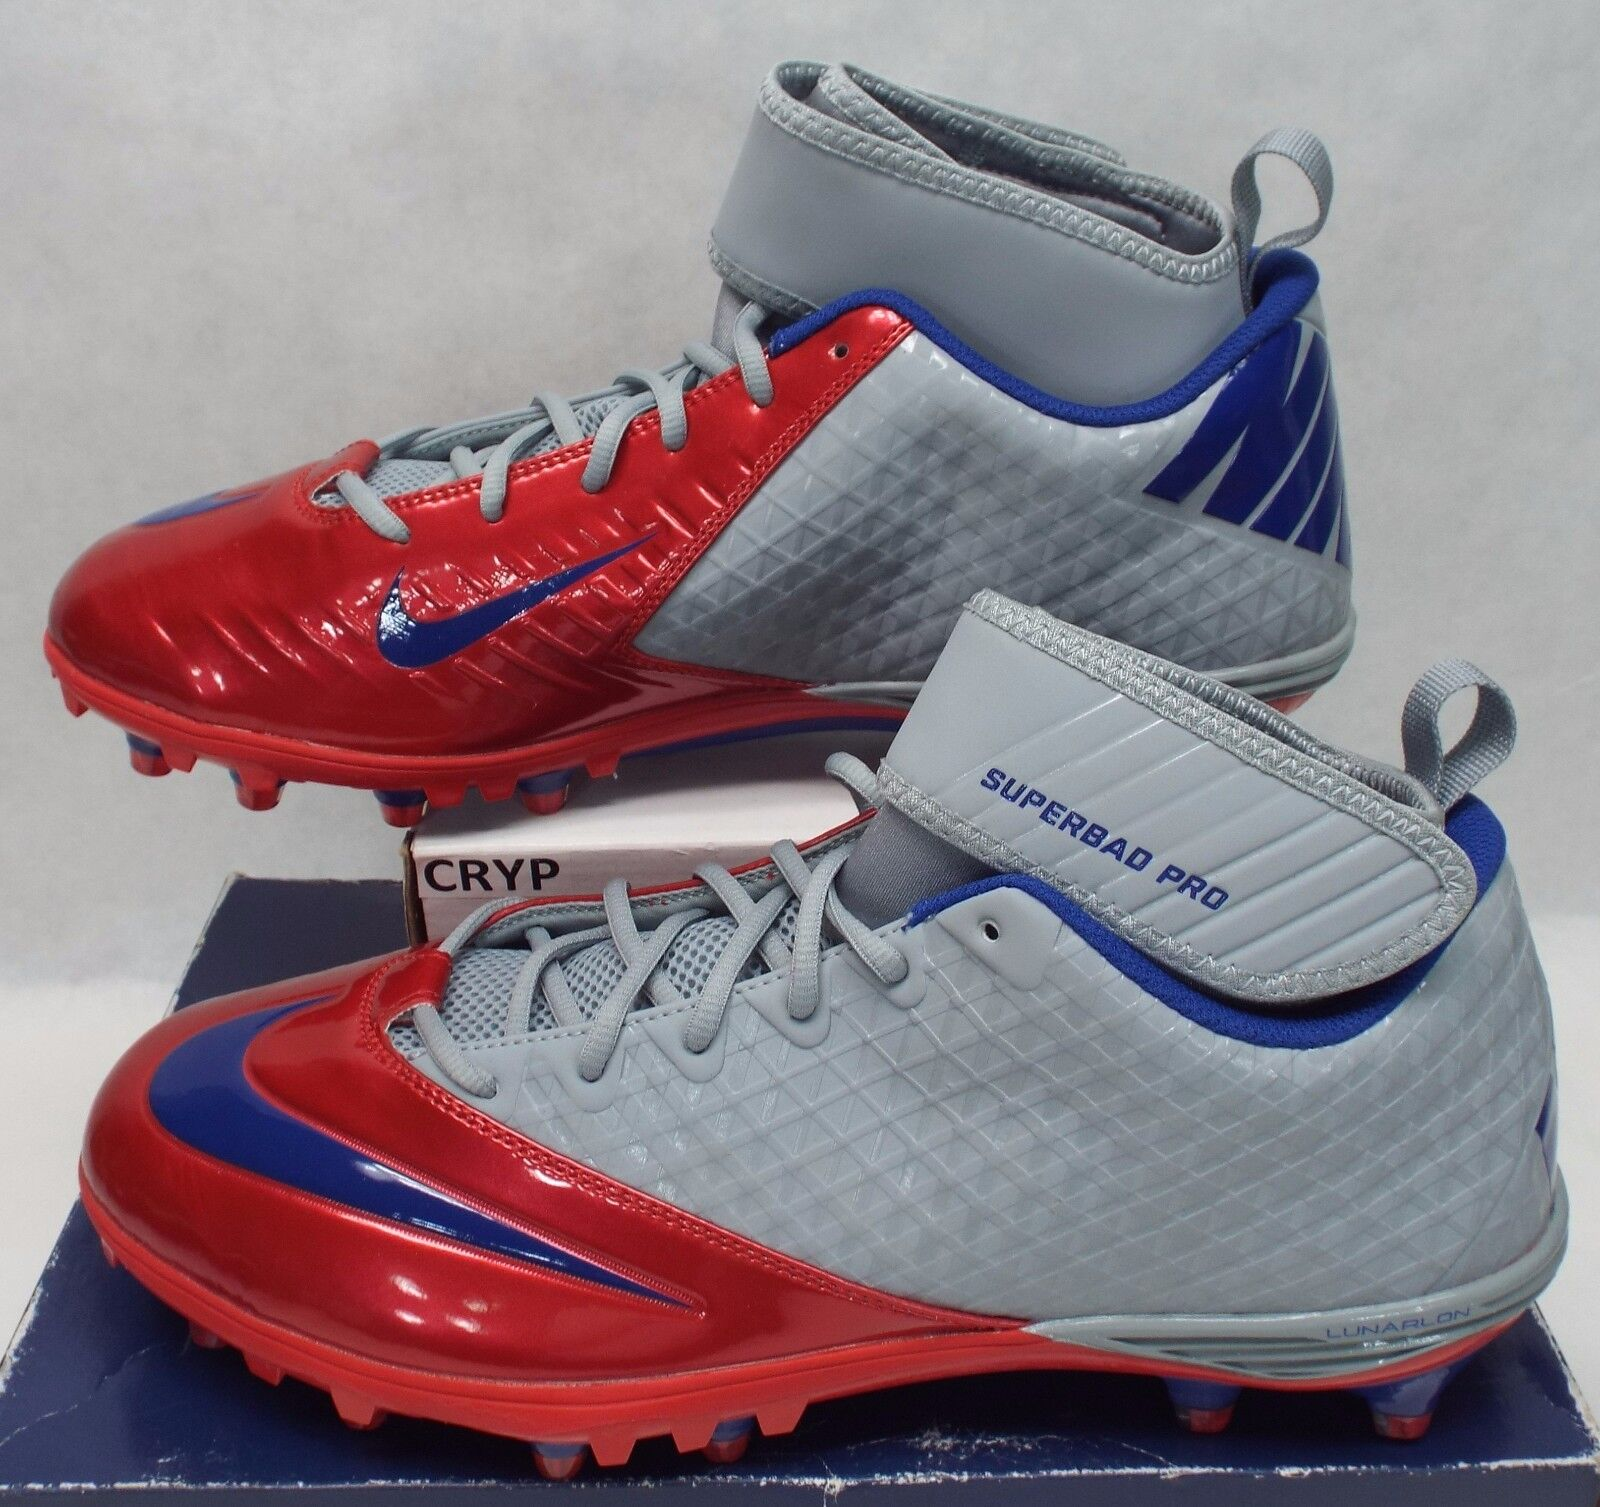 New Superbad Mens 15 NIKE Lunarlon Superbad New England Patriots Cleats Shoes $105 534994-046 71160a